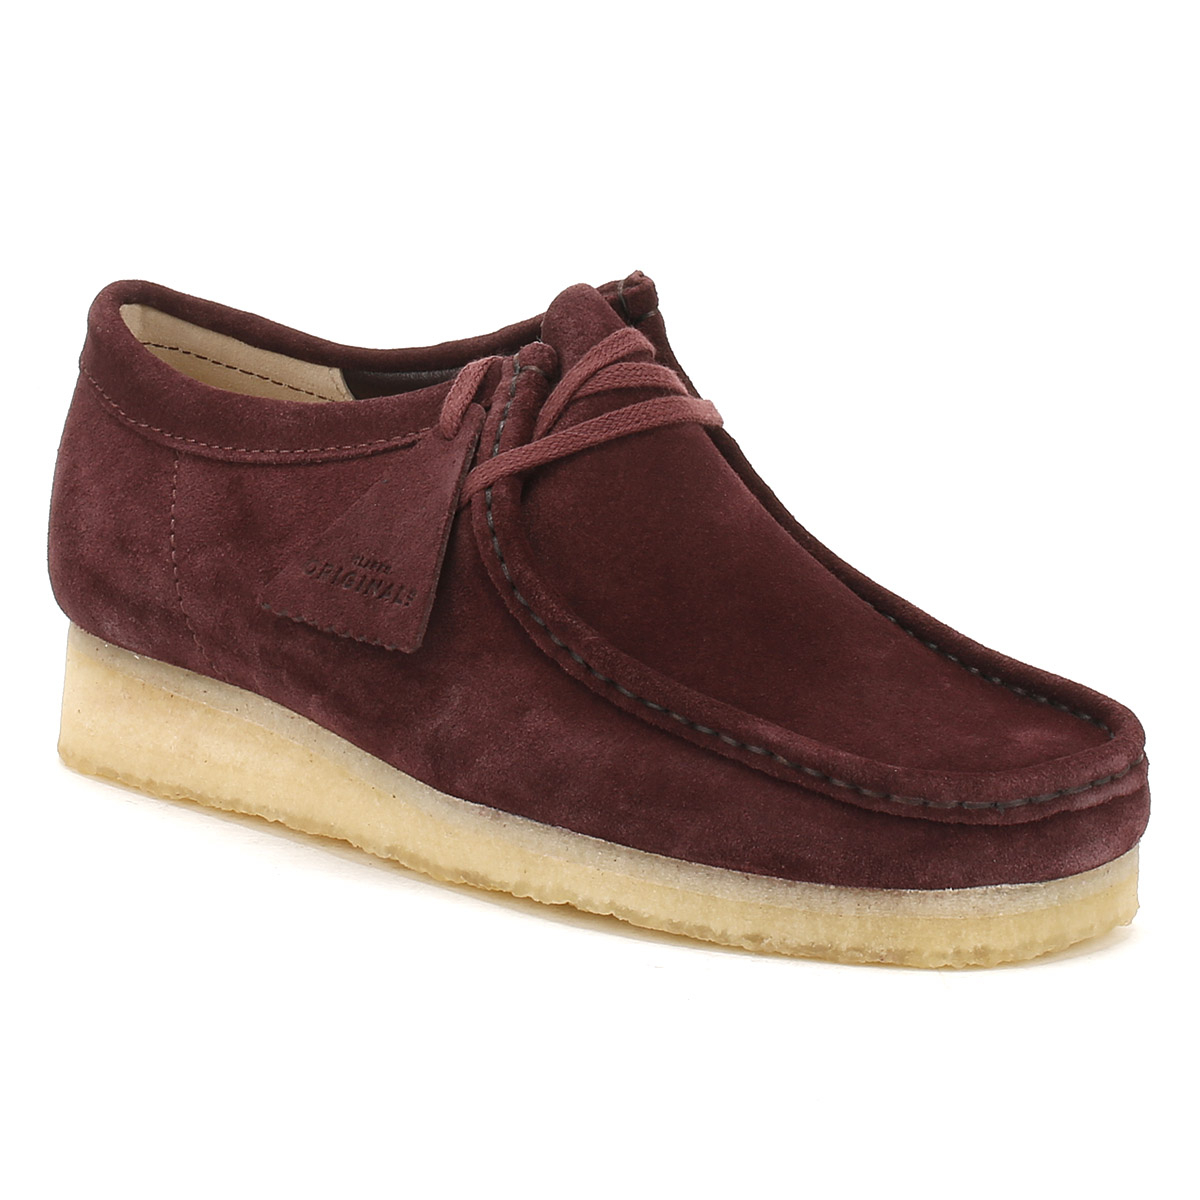 Red Moccasins Shoes Sale: Save Up to 60% Off! Shop ajaykumarchejarla.ml's huge selection of Red Moccasins Shoes - Over 15 styles available. FREE Shipping & Exchanges, and a % price guarantee!